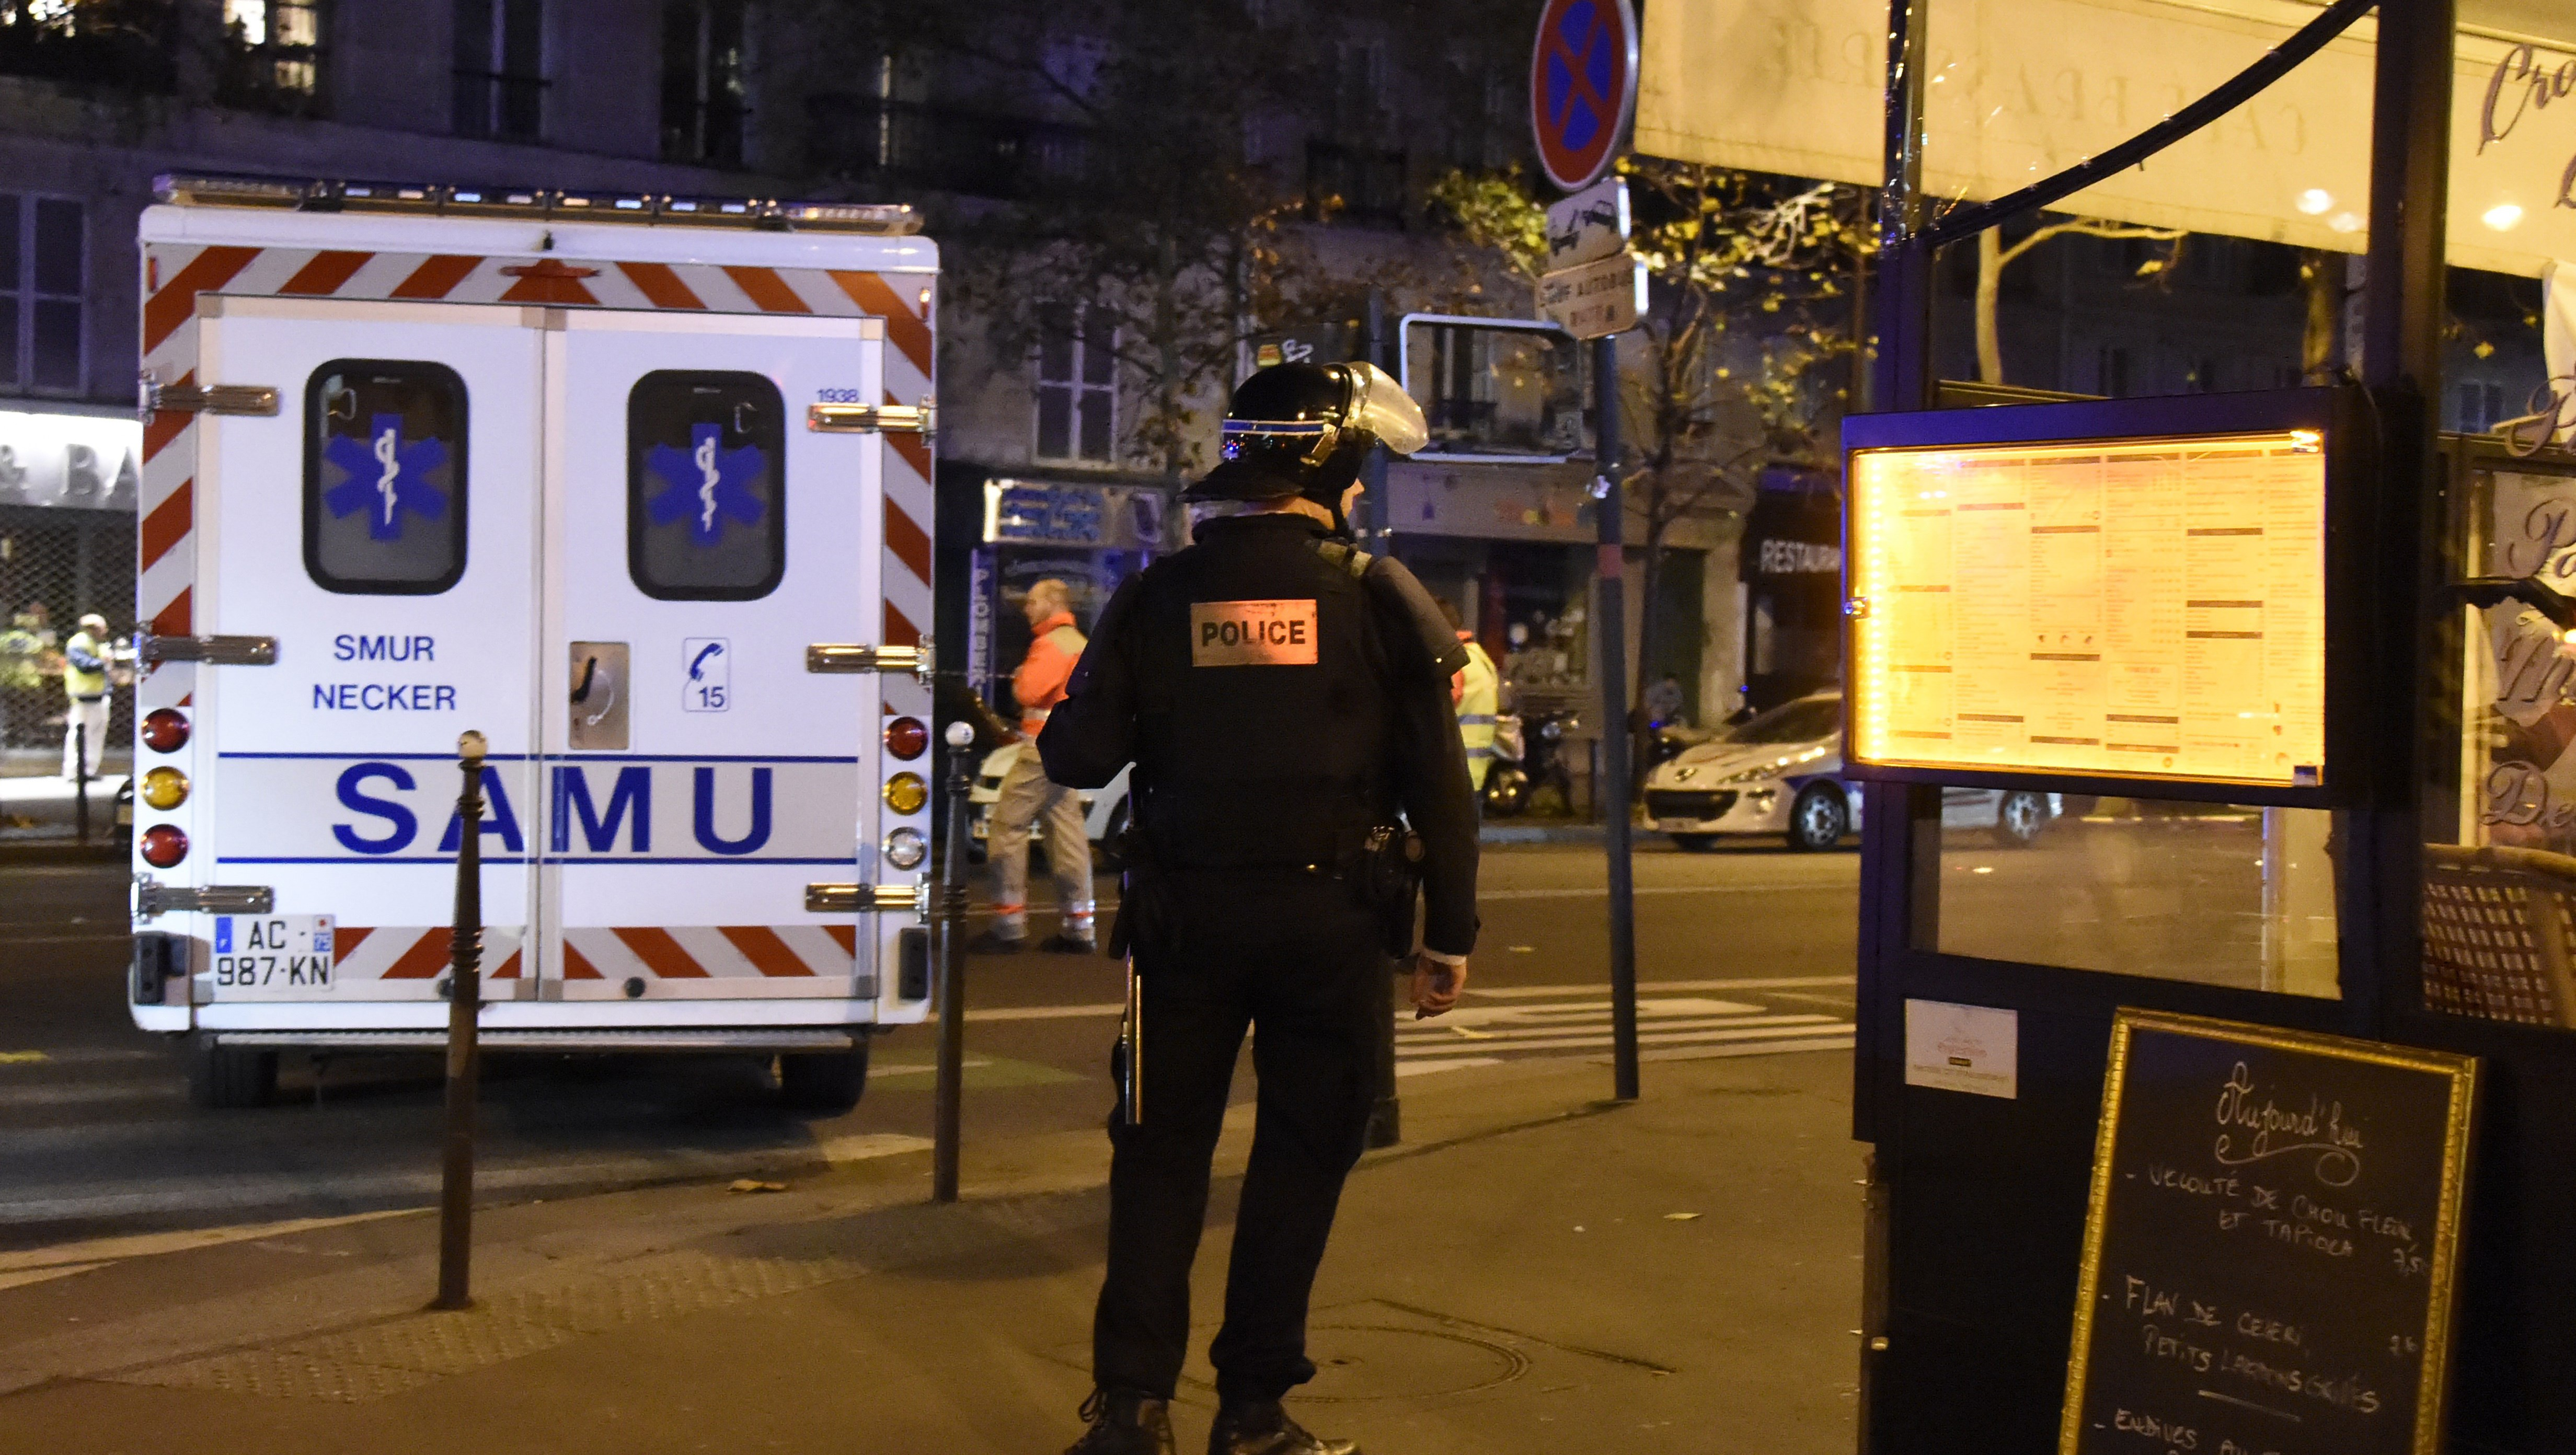 A riot police officer stands by an ambulance near the Bataclan concert hall in central Paris, on November 13, 2015. A number of people were killed and others injured in a series of gun attacks across Paris, as well as explosions outside the national stadium where France was hosting Germany.   AFP PHOTO / DOMINIQUE FAGET        (Photo credit should read DOMINIQUE FAGET/AFP/Getty Images)